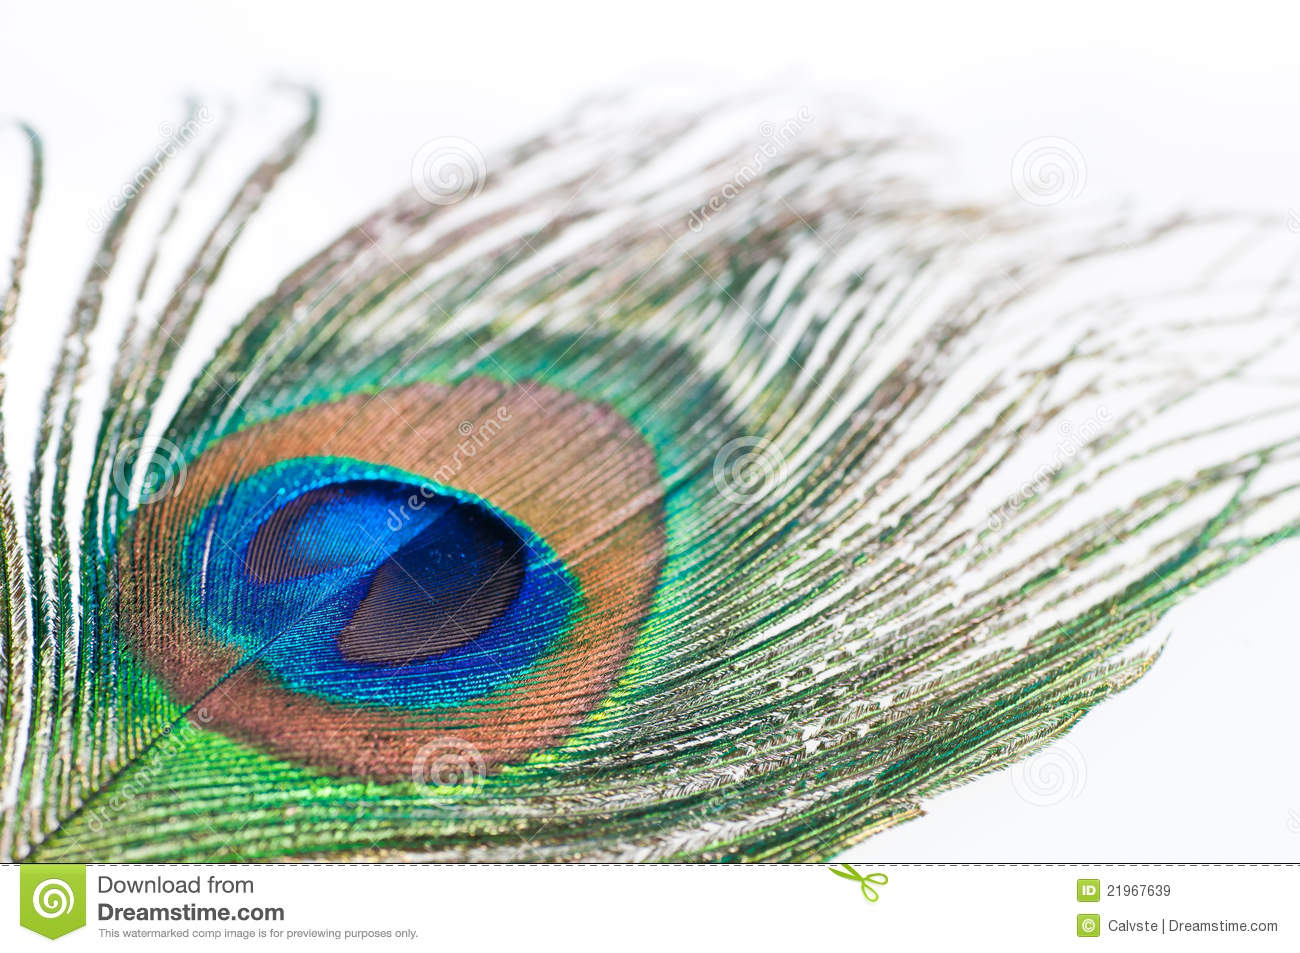 Peacock feather on white